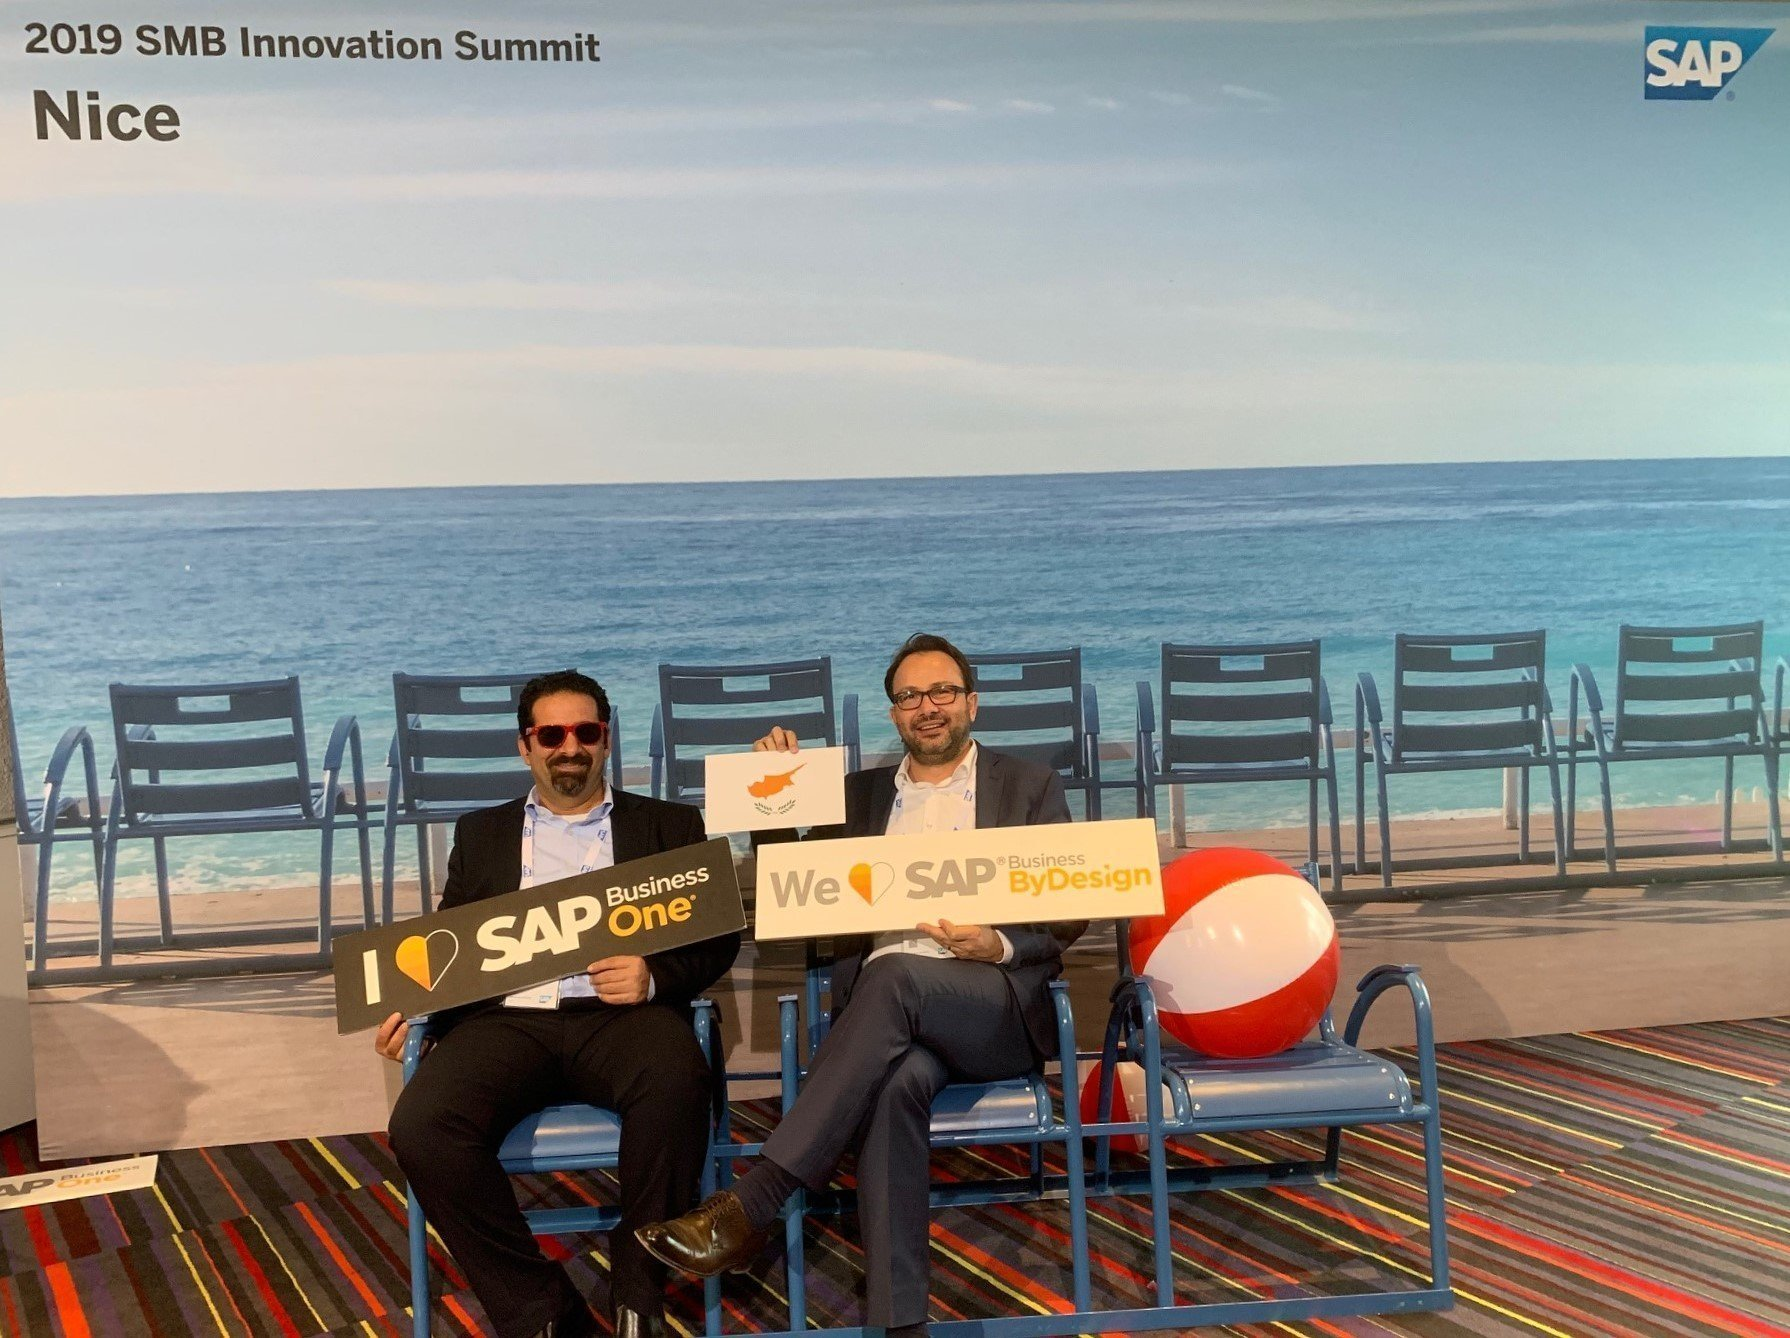 SMB Innovation Summit